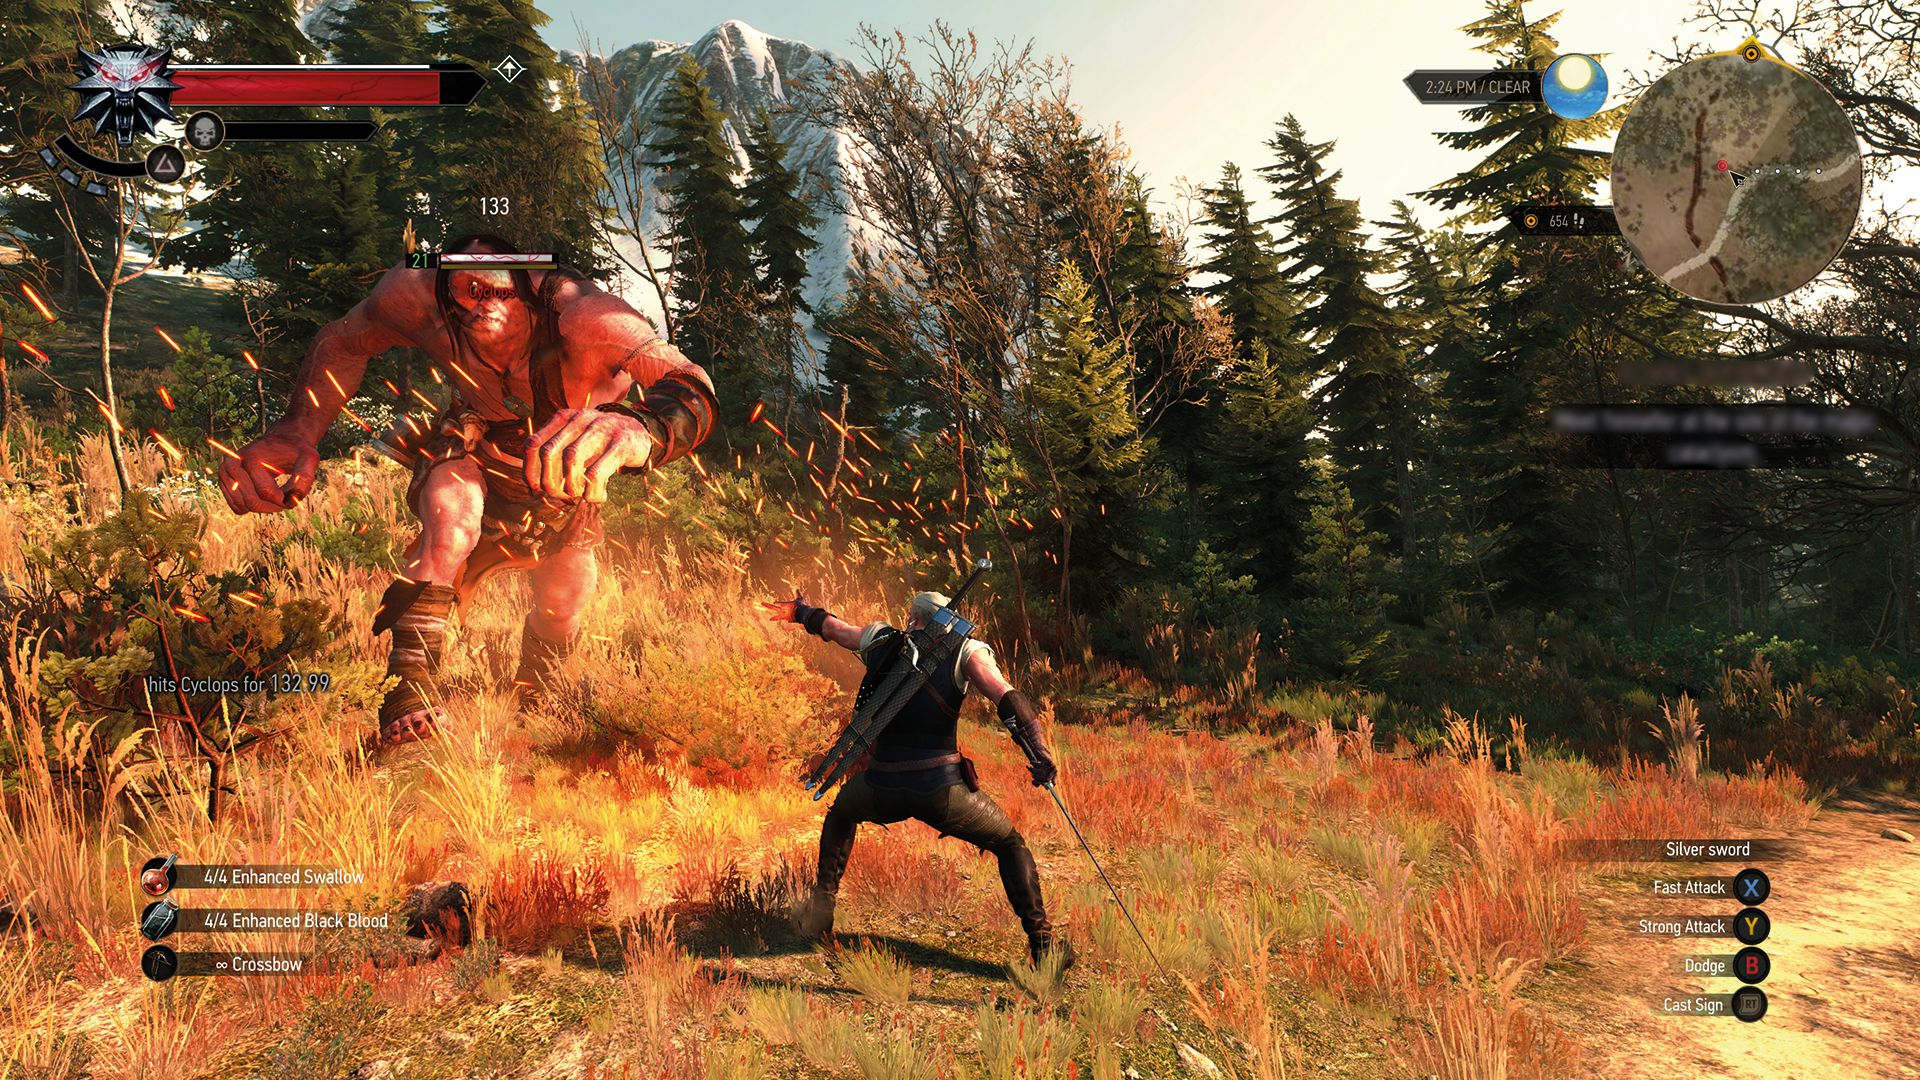 the_witcher_3_wild_hunt_fee_fi_fo_fum_i_smell_supper_1430900899